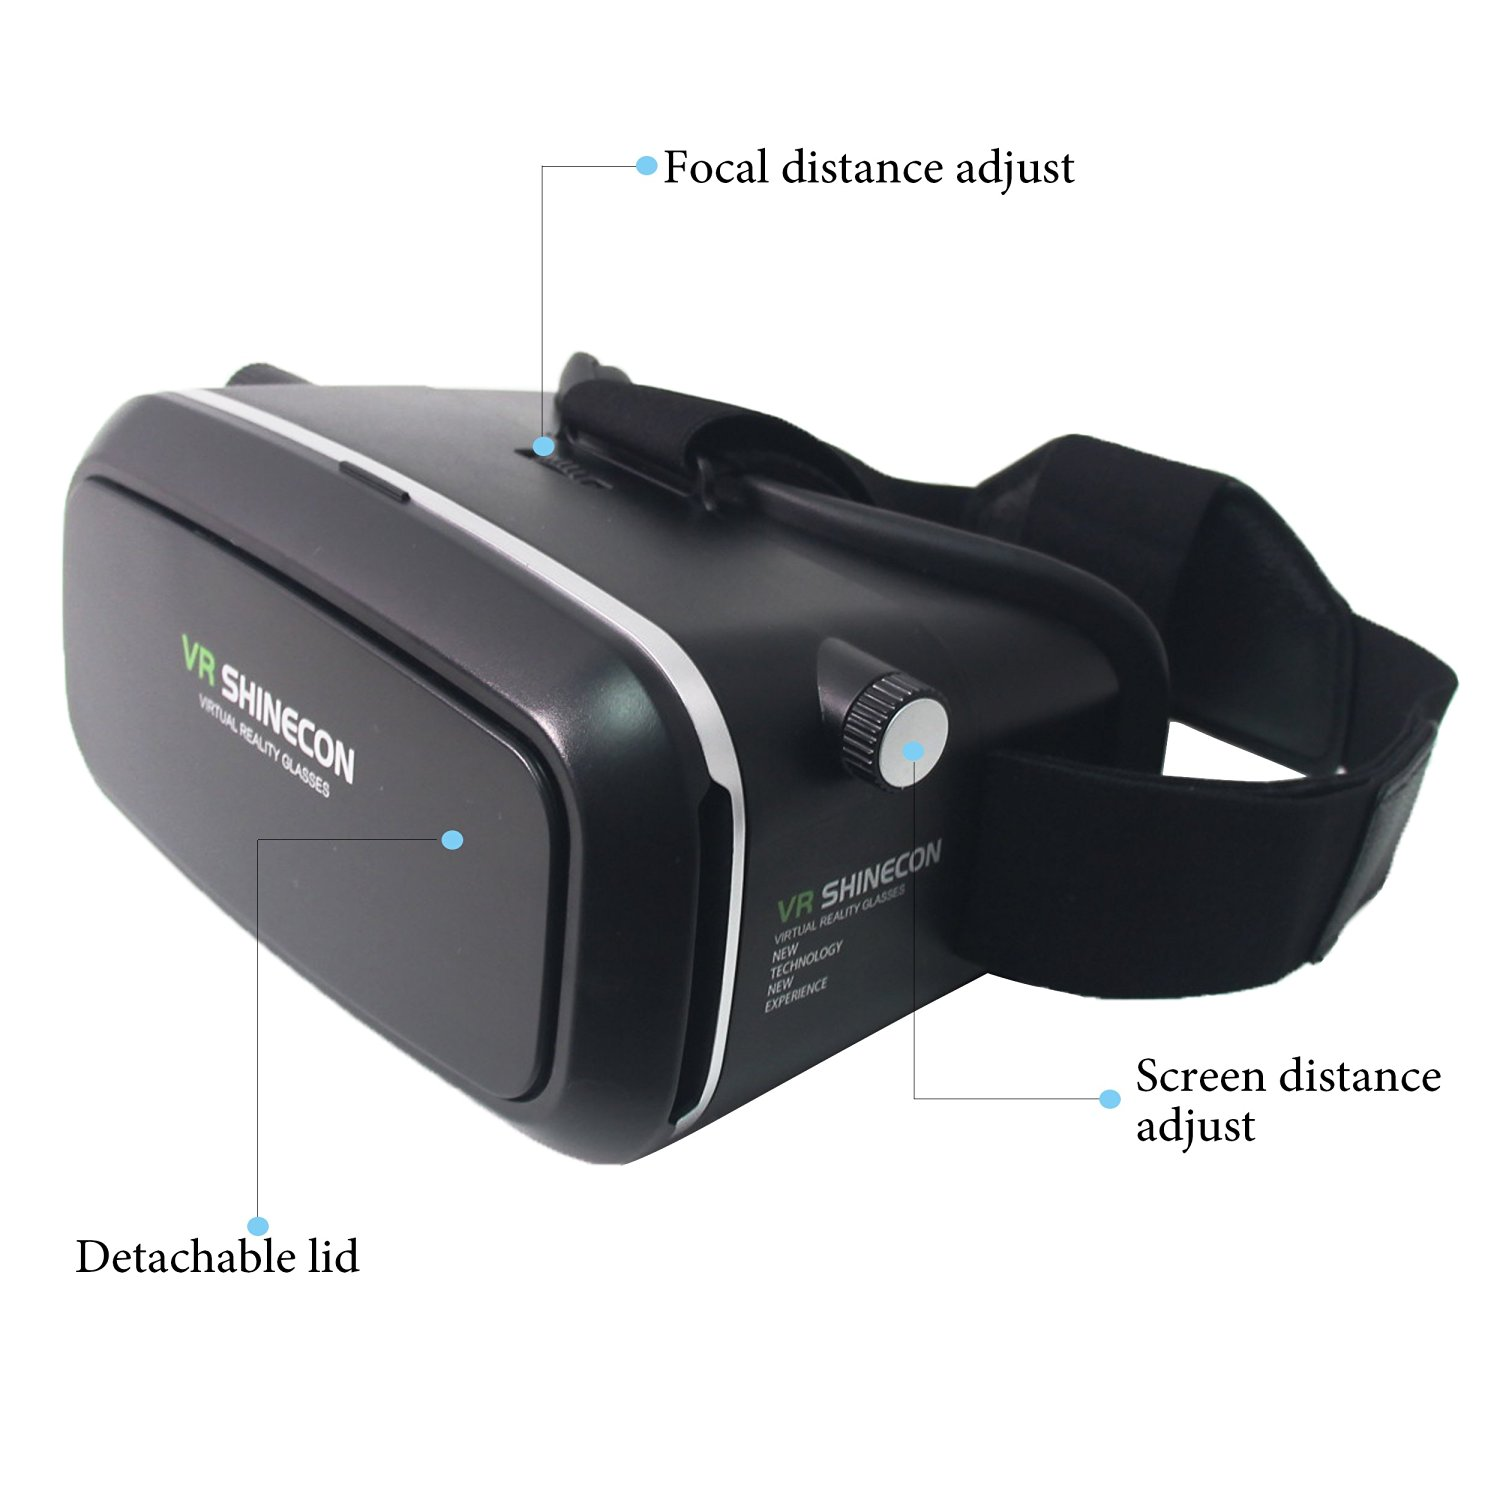 Signswise 360 degree Viewing Immersive Virtual Reality 3D VR Glasses Google Cardboard 3D Video Games Glasses VR Headset fits 3.5-6.0 inches Android & Apple Smartphones for 3D Movies and Games